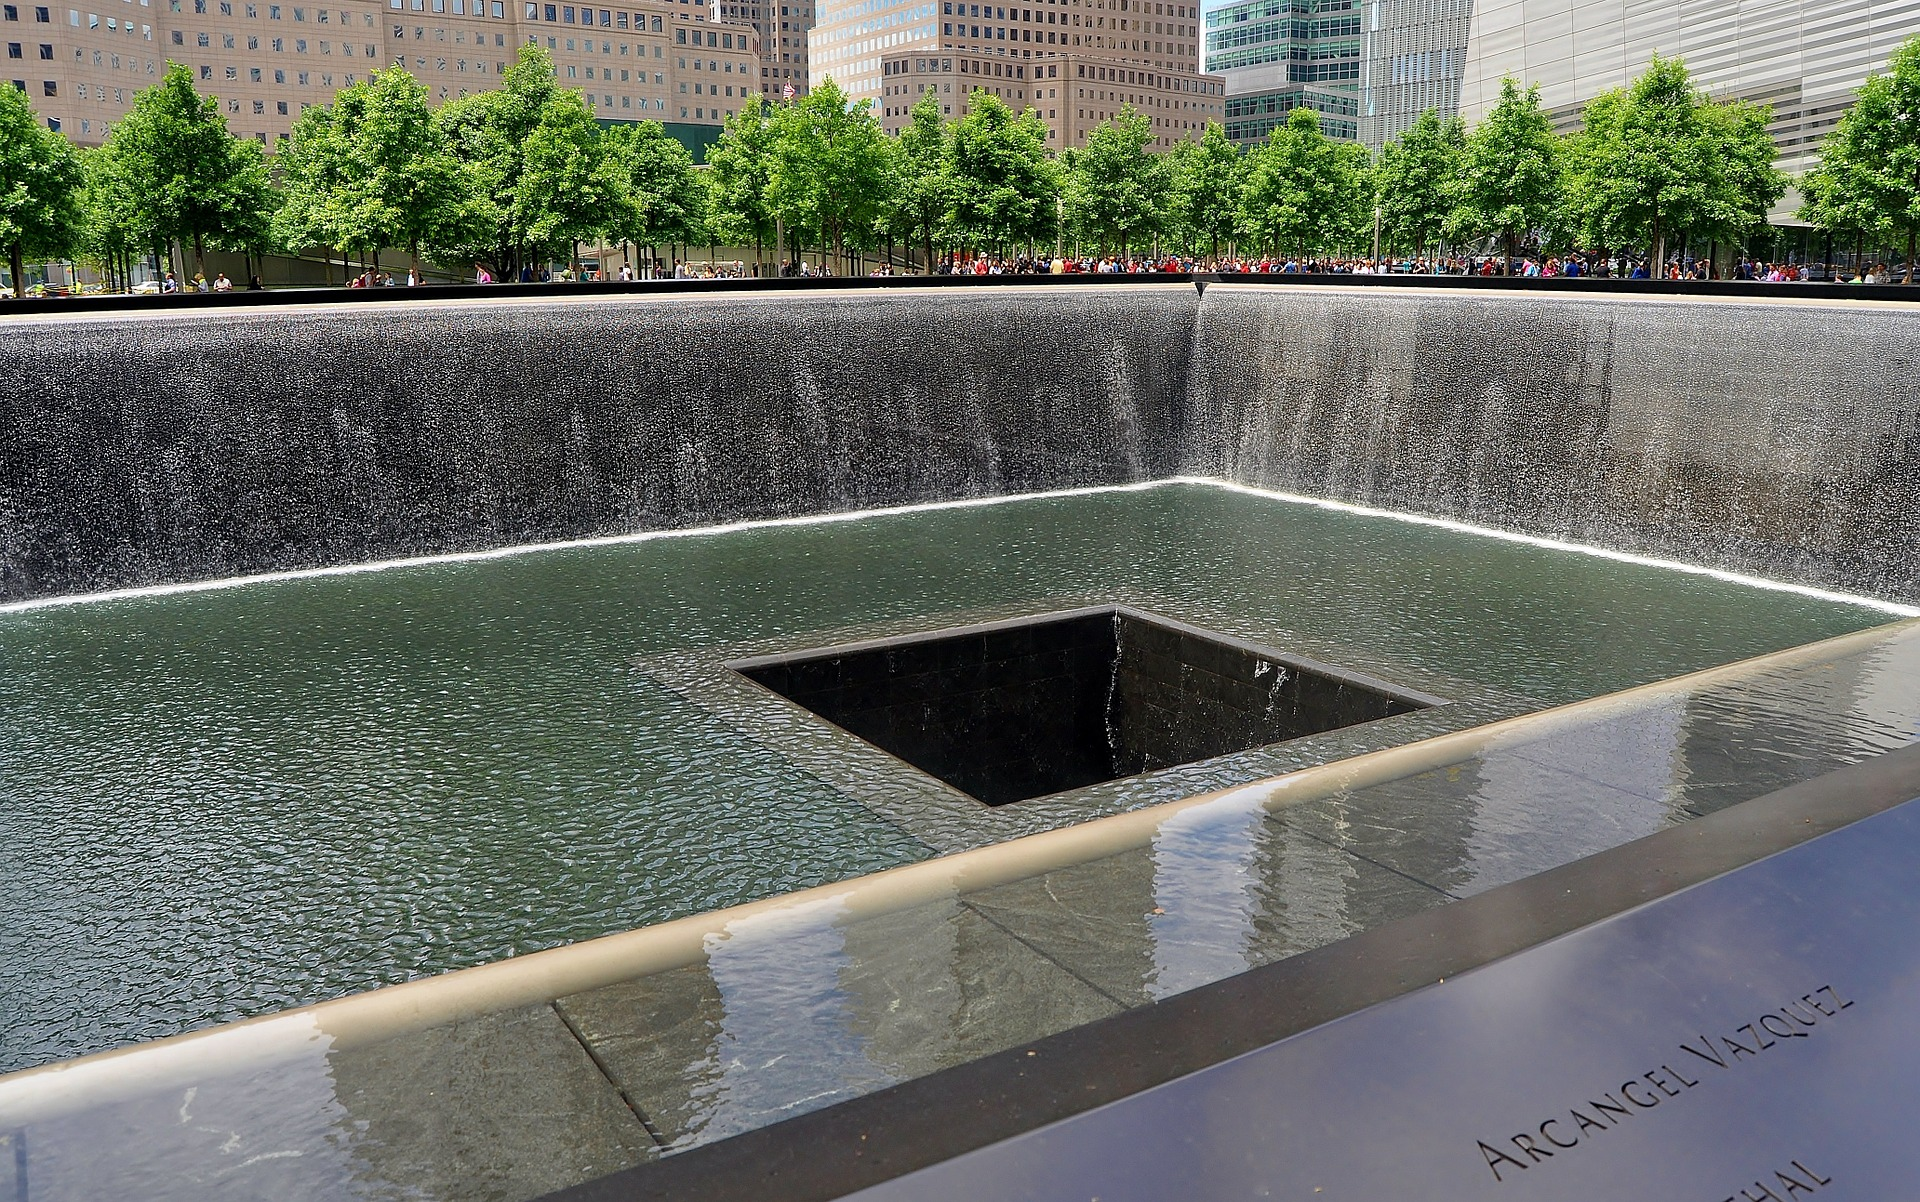 Ground Zero, National September 11 Memorial, New York City